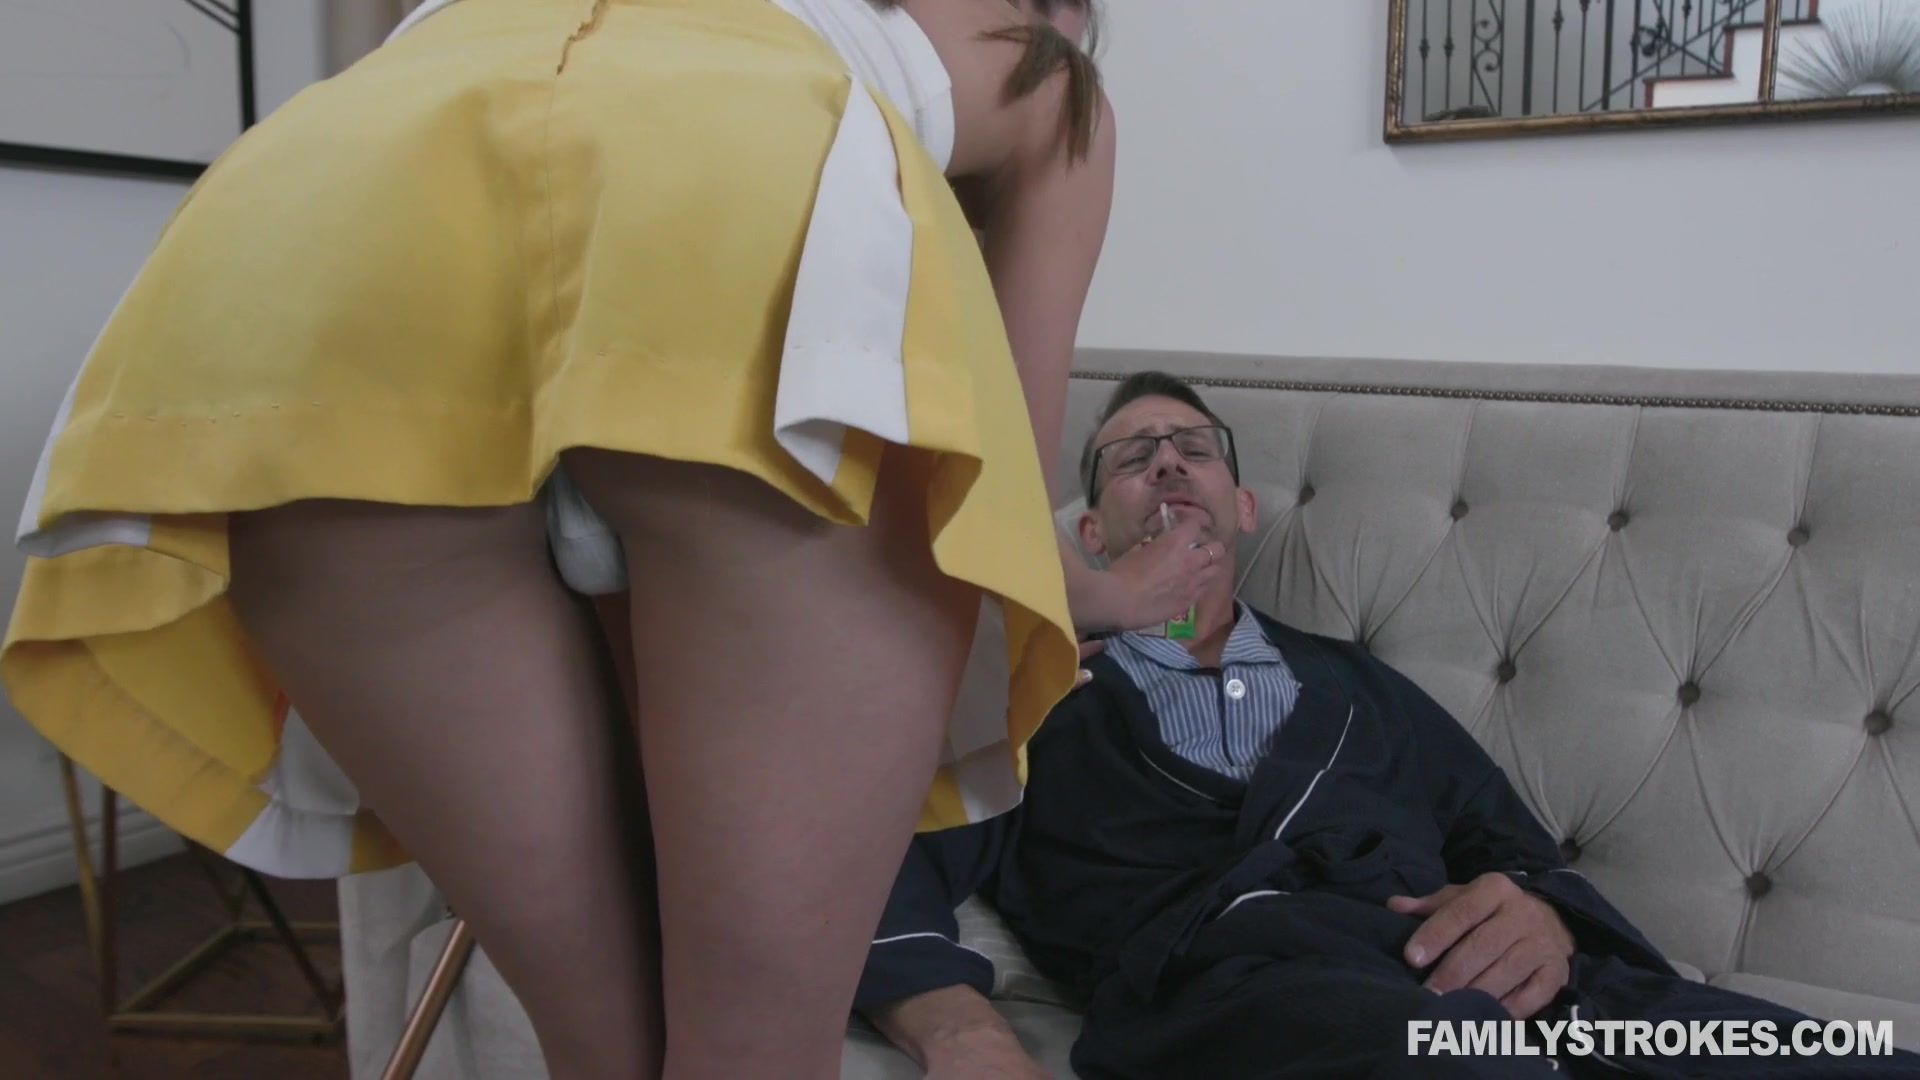 Horny grandpa fucking 19 yo step granddaughter in short skirt Zoe Sparx